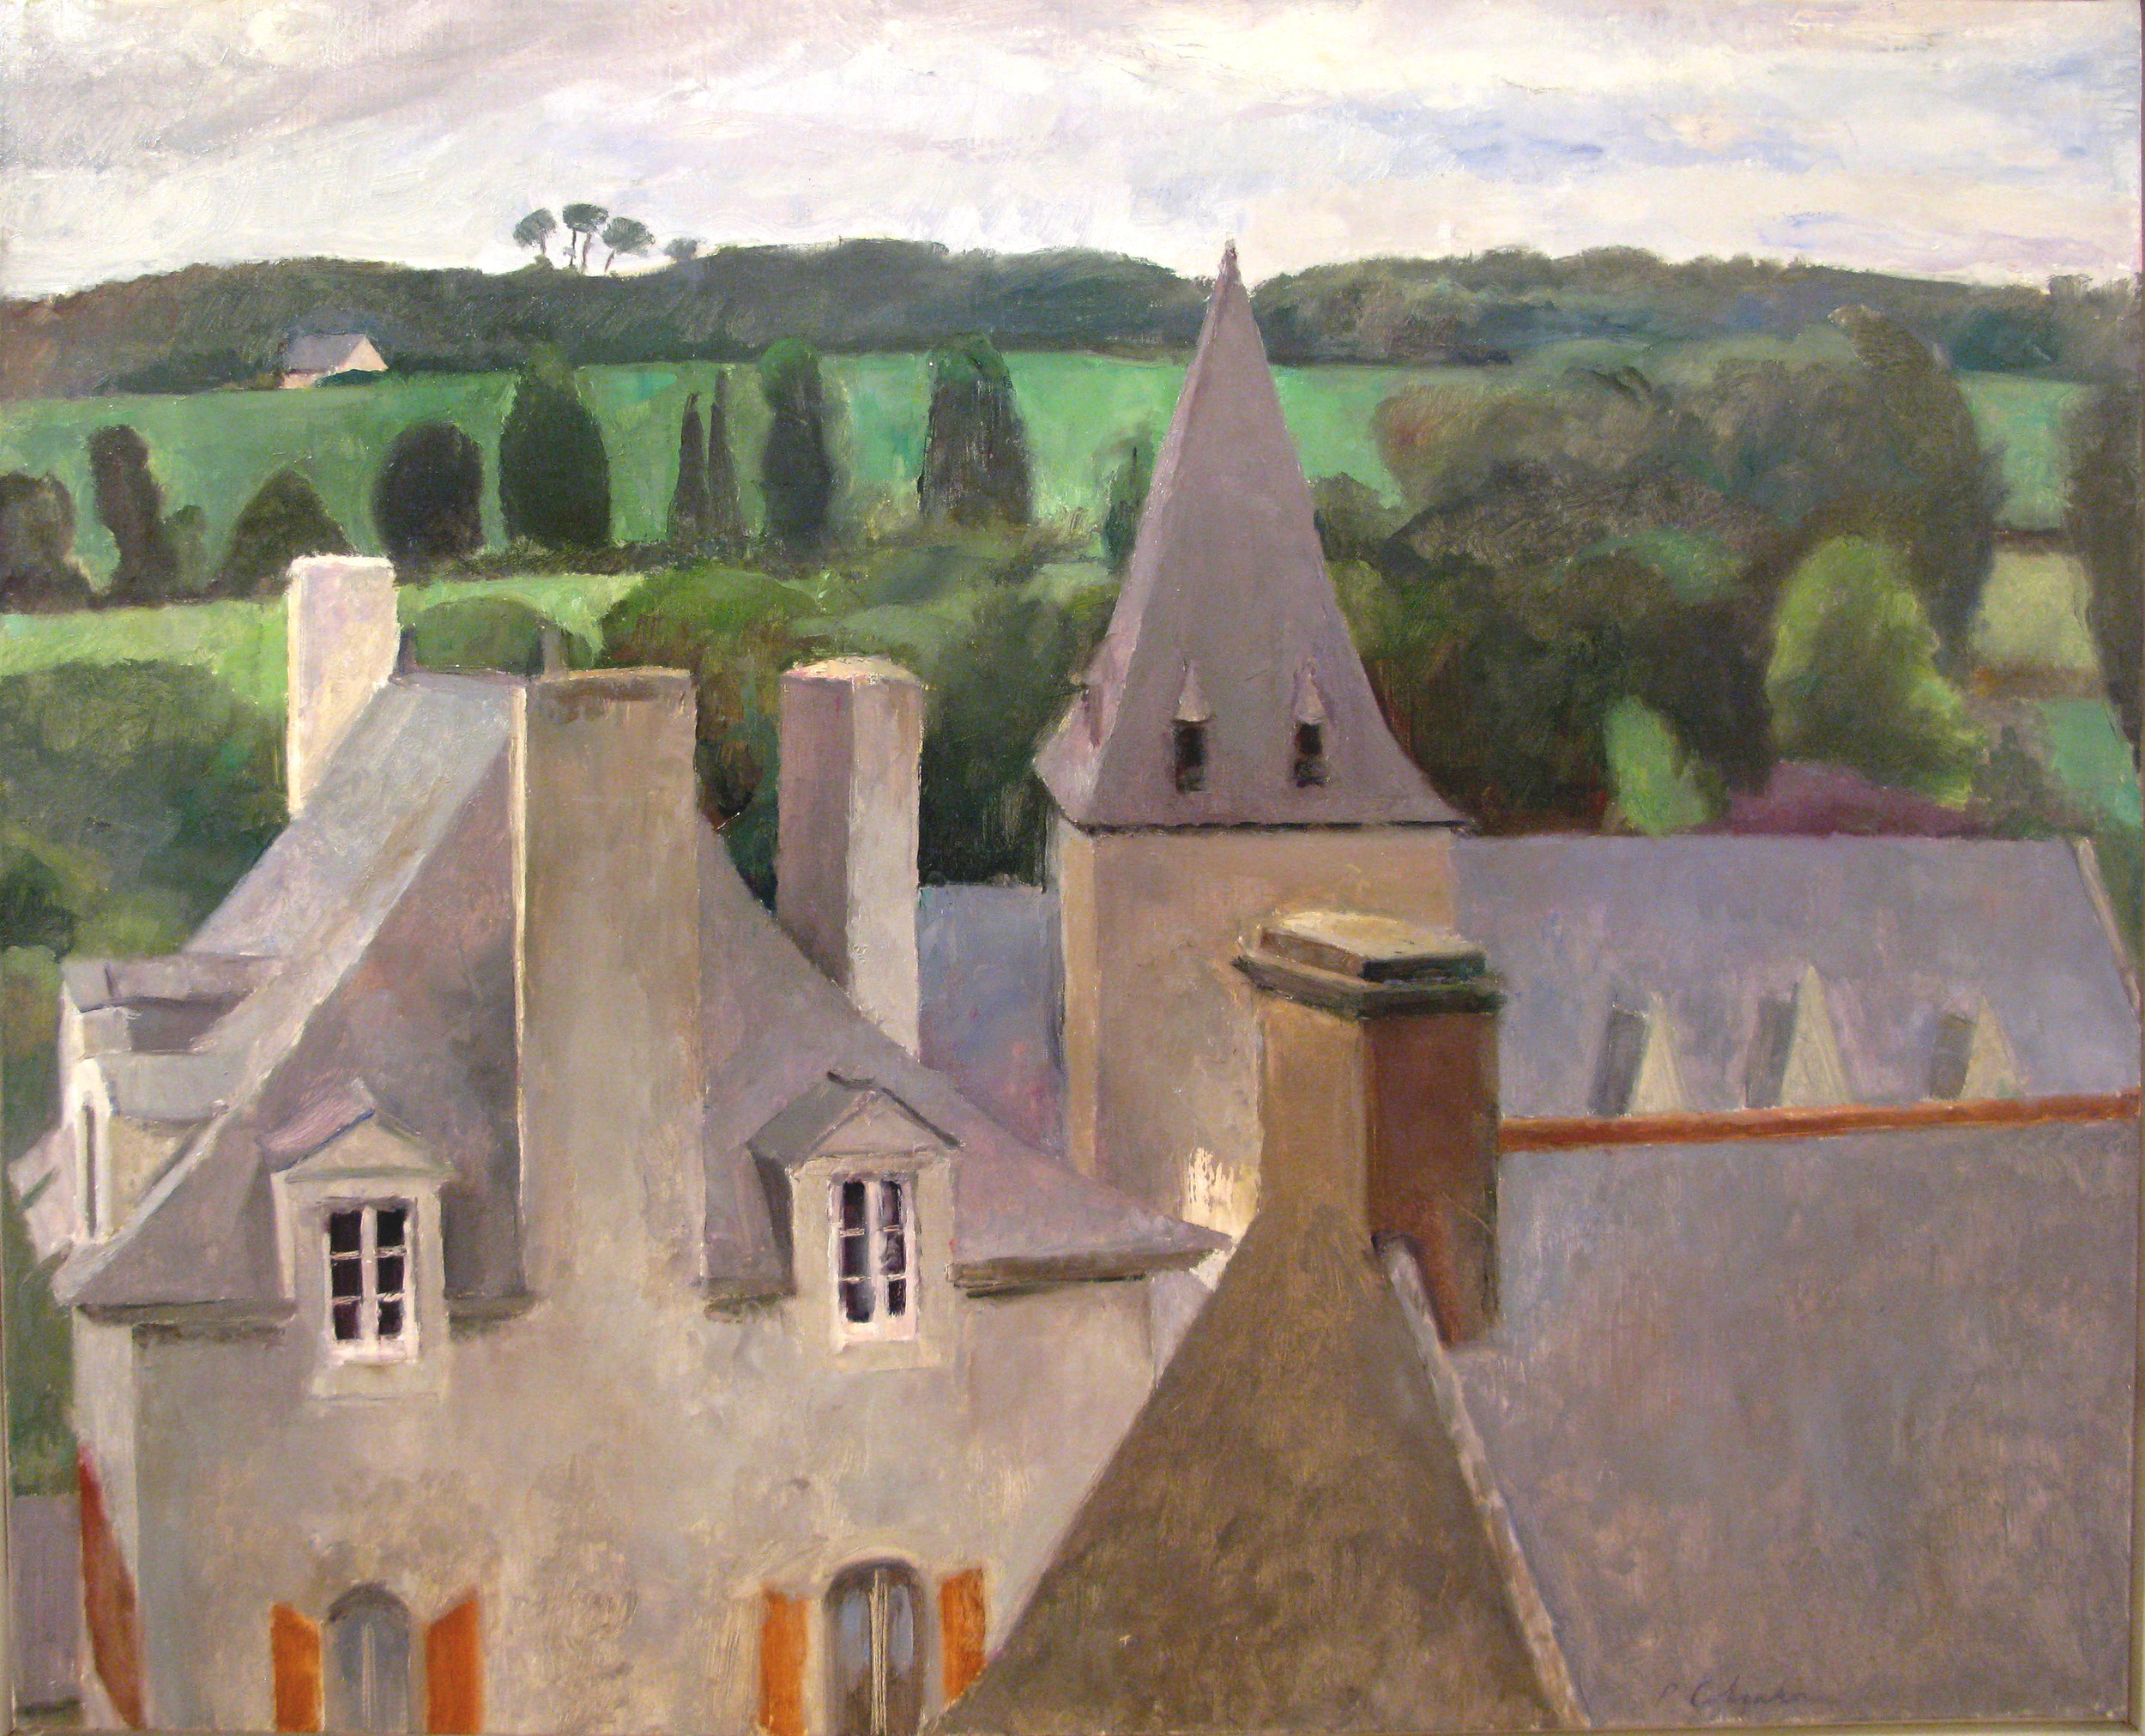 "View from the Pavillion, Rochefort, 25"" x 31"", oil on linen"